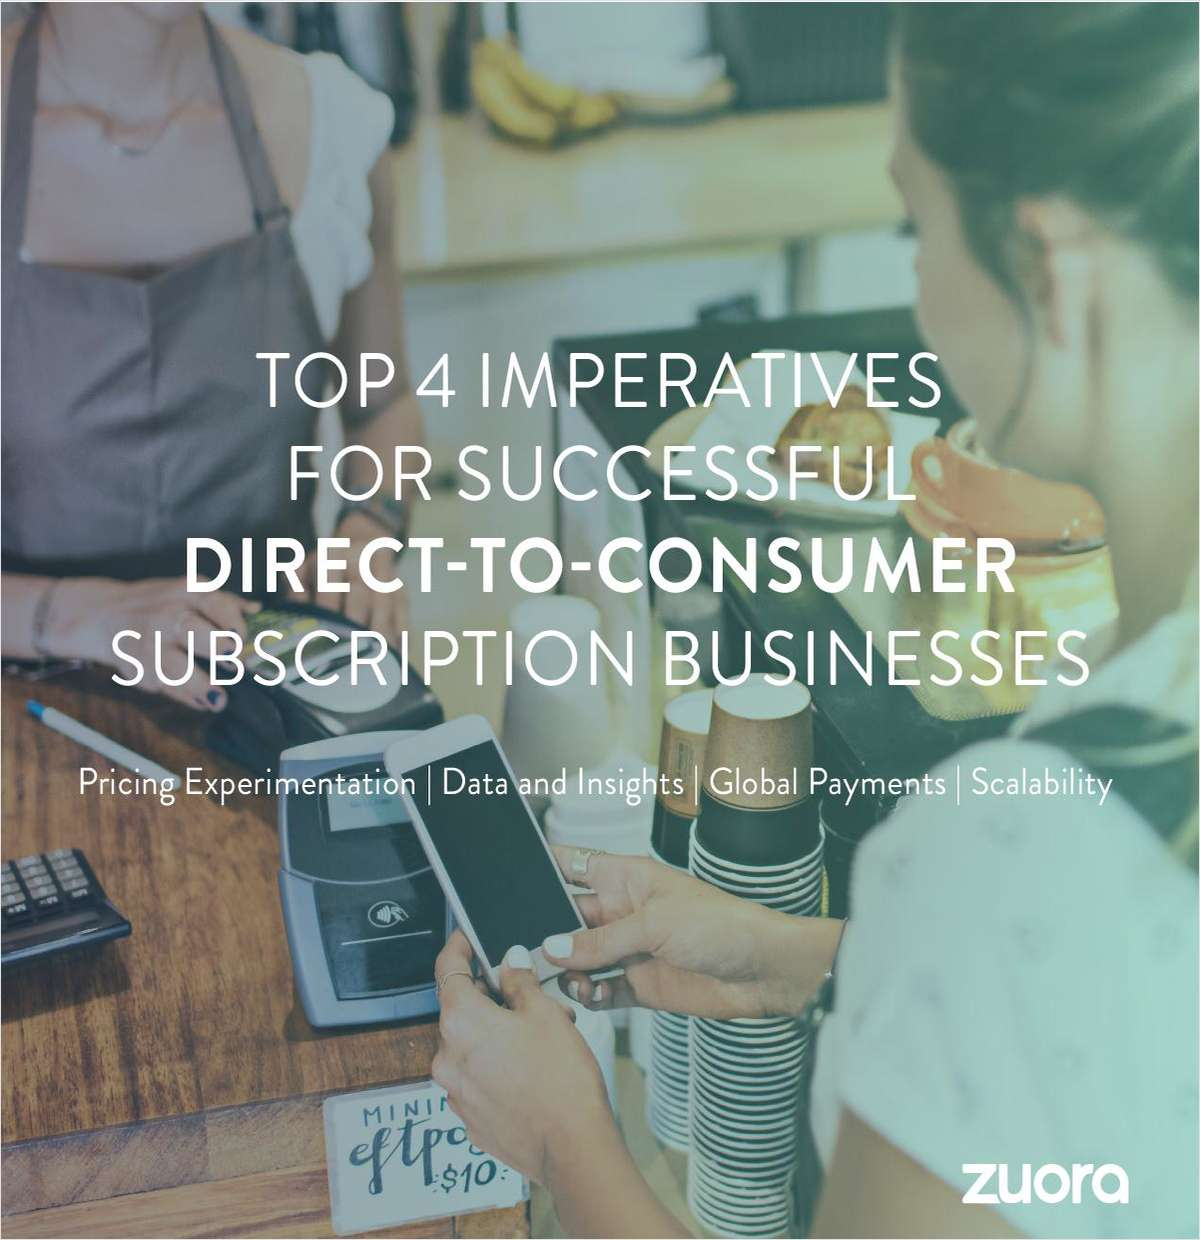 The Top 4 Imperative for Successful Direct-to-Consumer Subscription Businesses